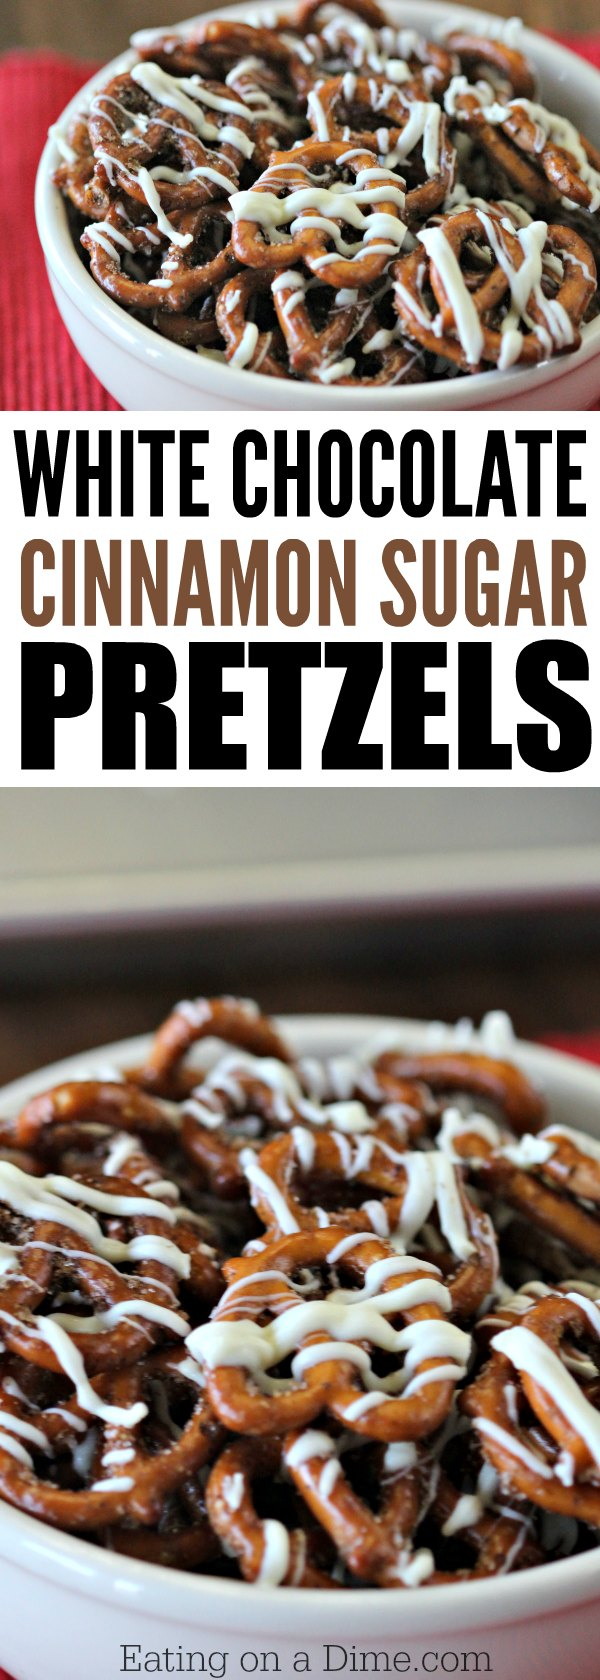 White Chocolate Cinnamon Sugar Pretzels Recipe - Eating on a Dime